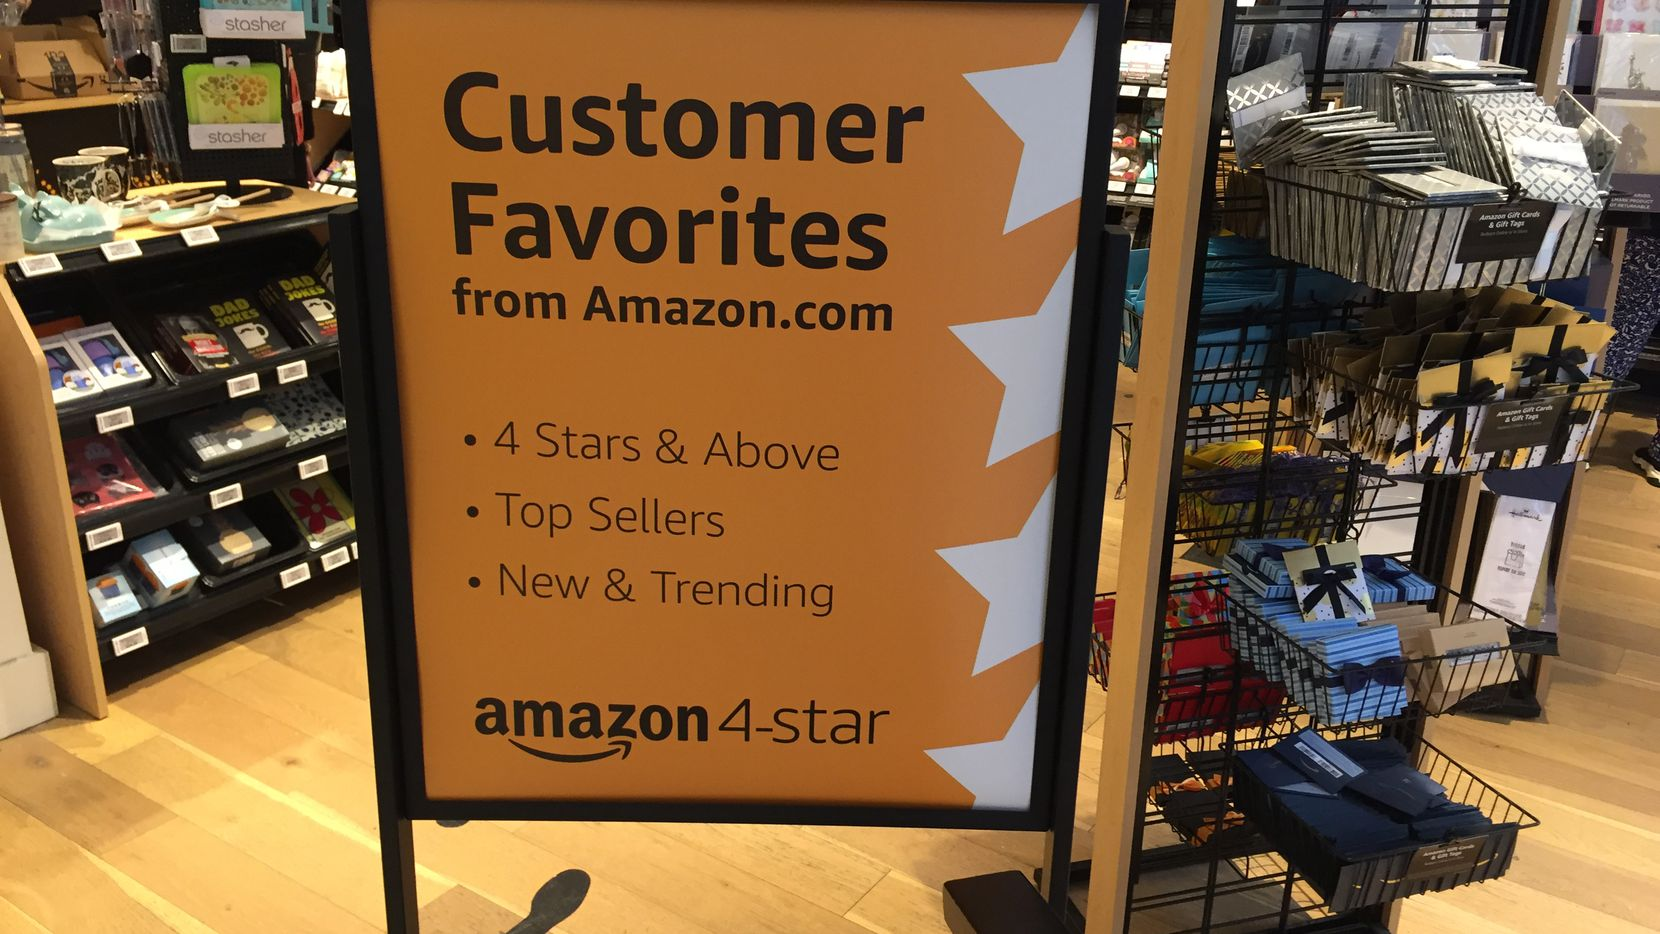 Amazon to open its 4-Star store in Dallas-Fort Worth